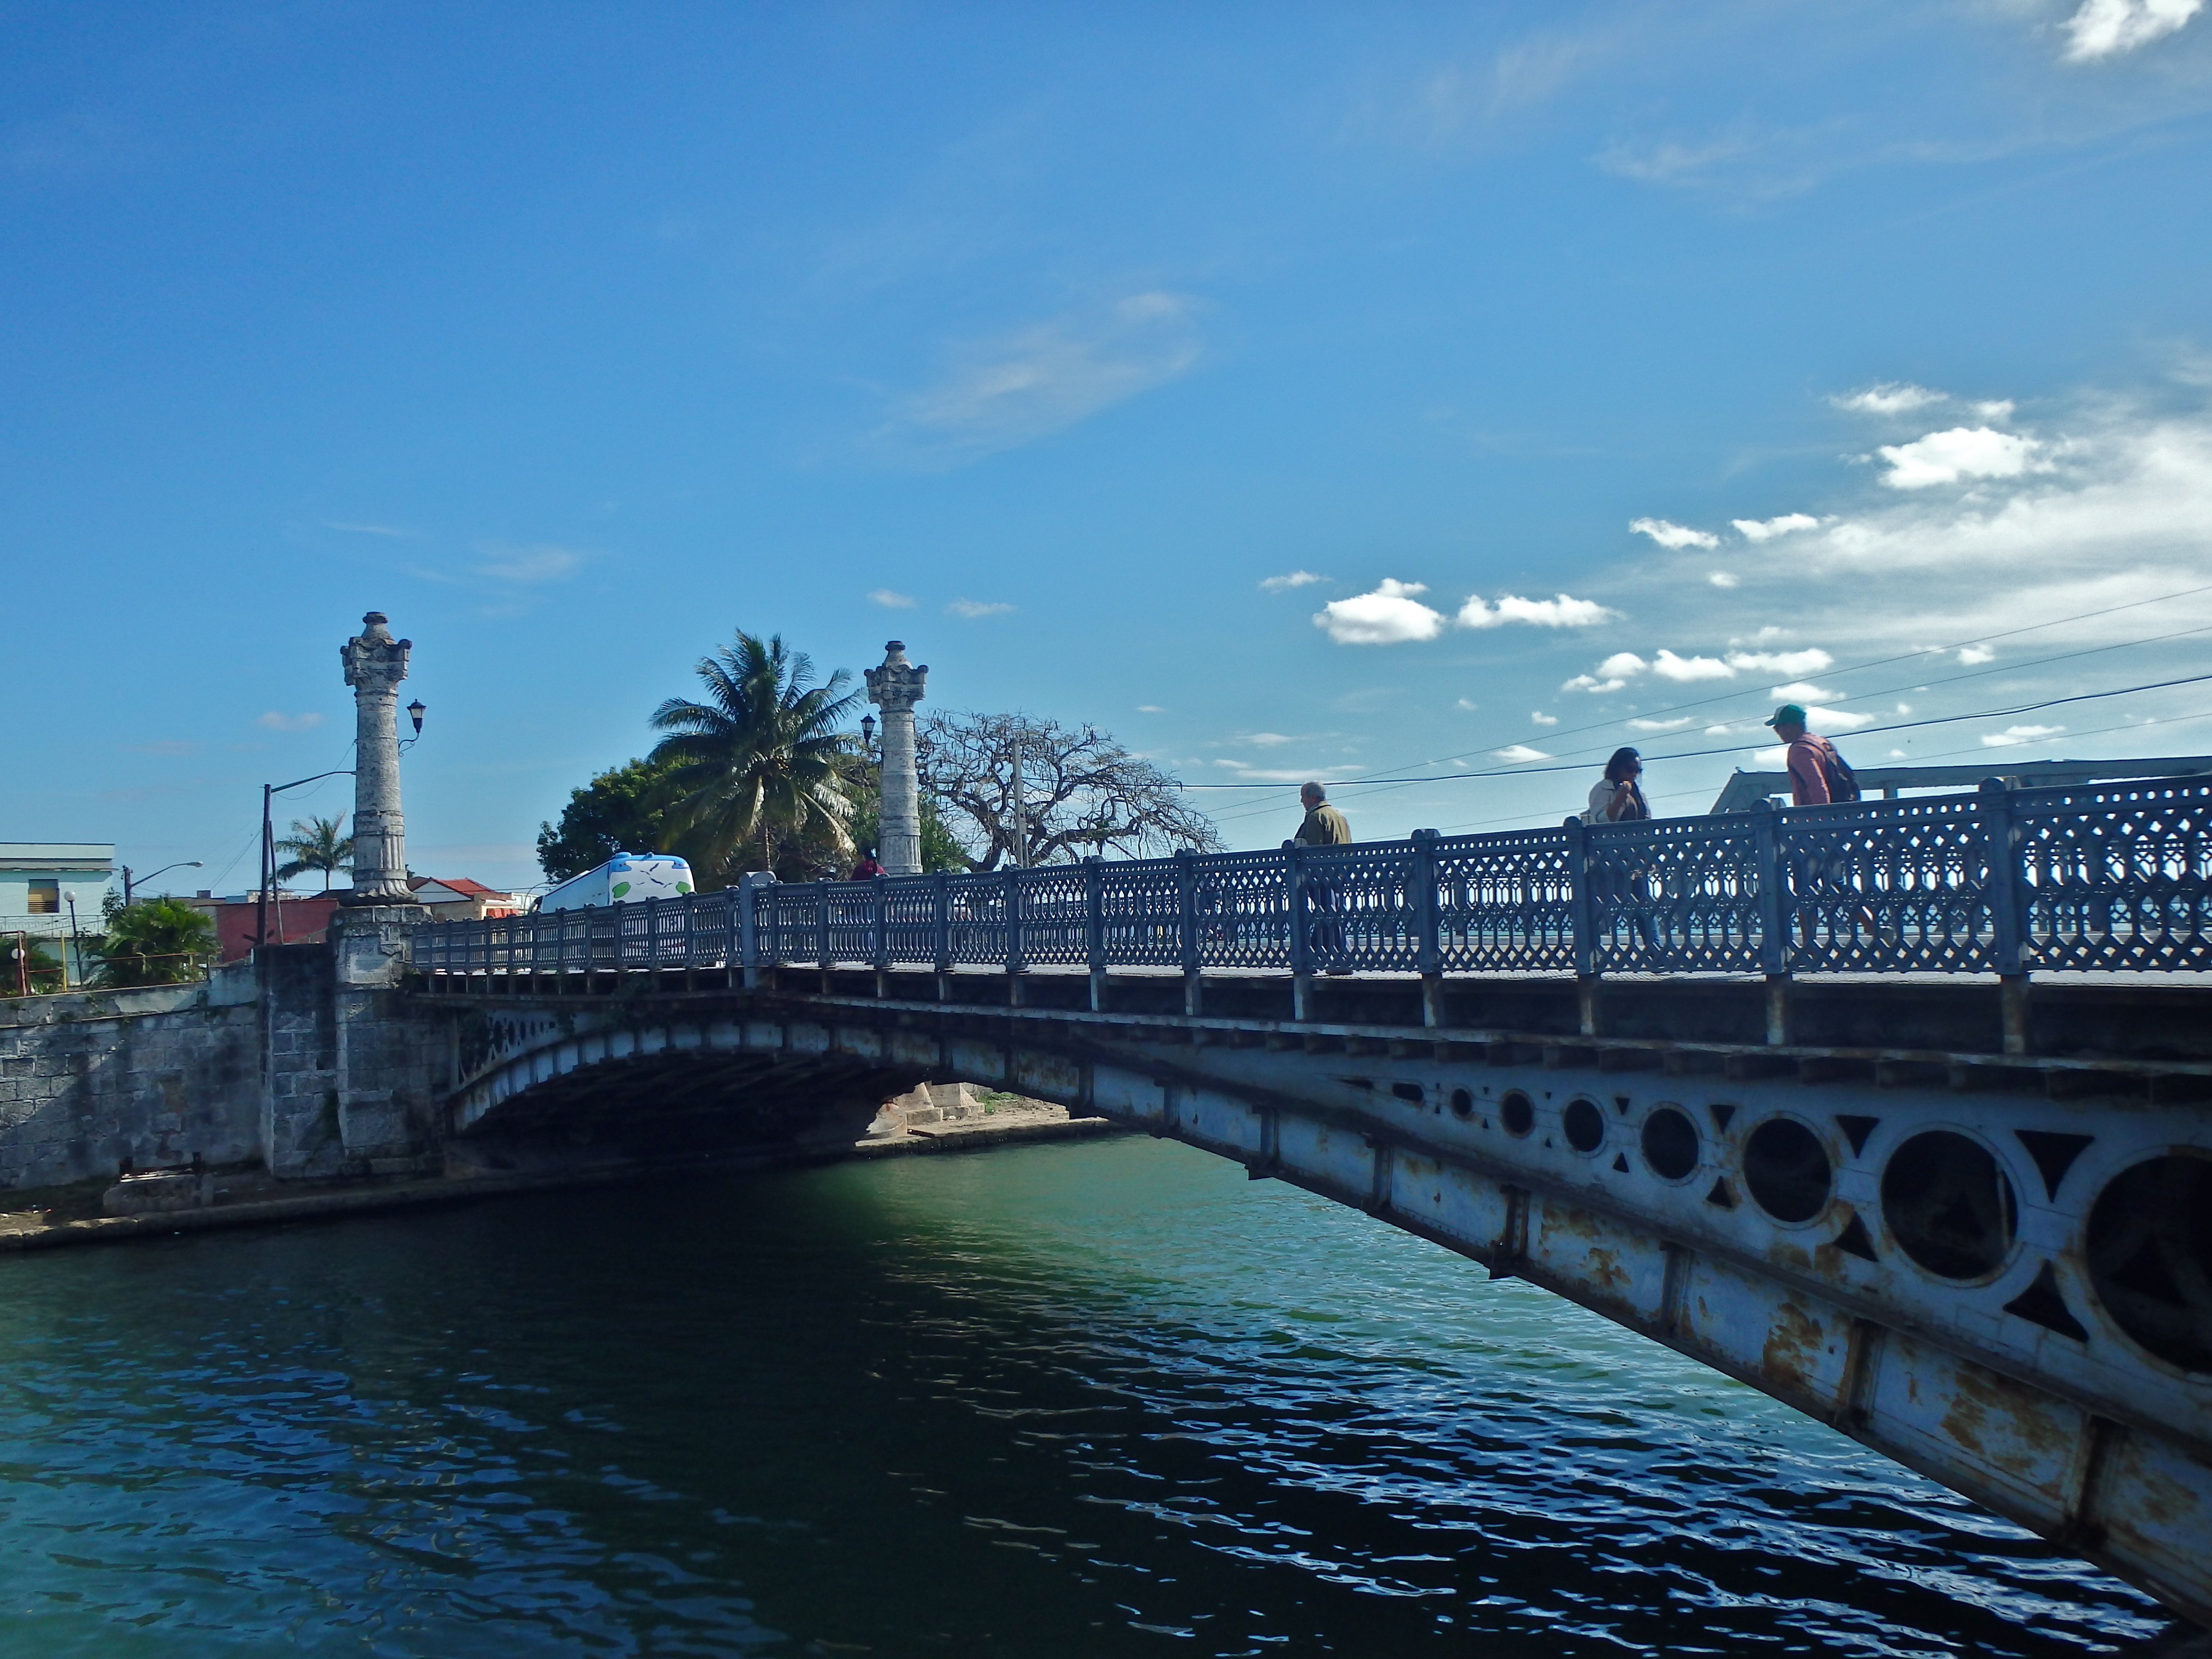 A Matanzas Bridge 3 weeks cuba itinerary what to see in cuba in 3 weeks travelling cuba for 3 weeks